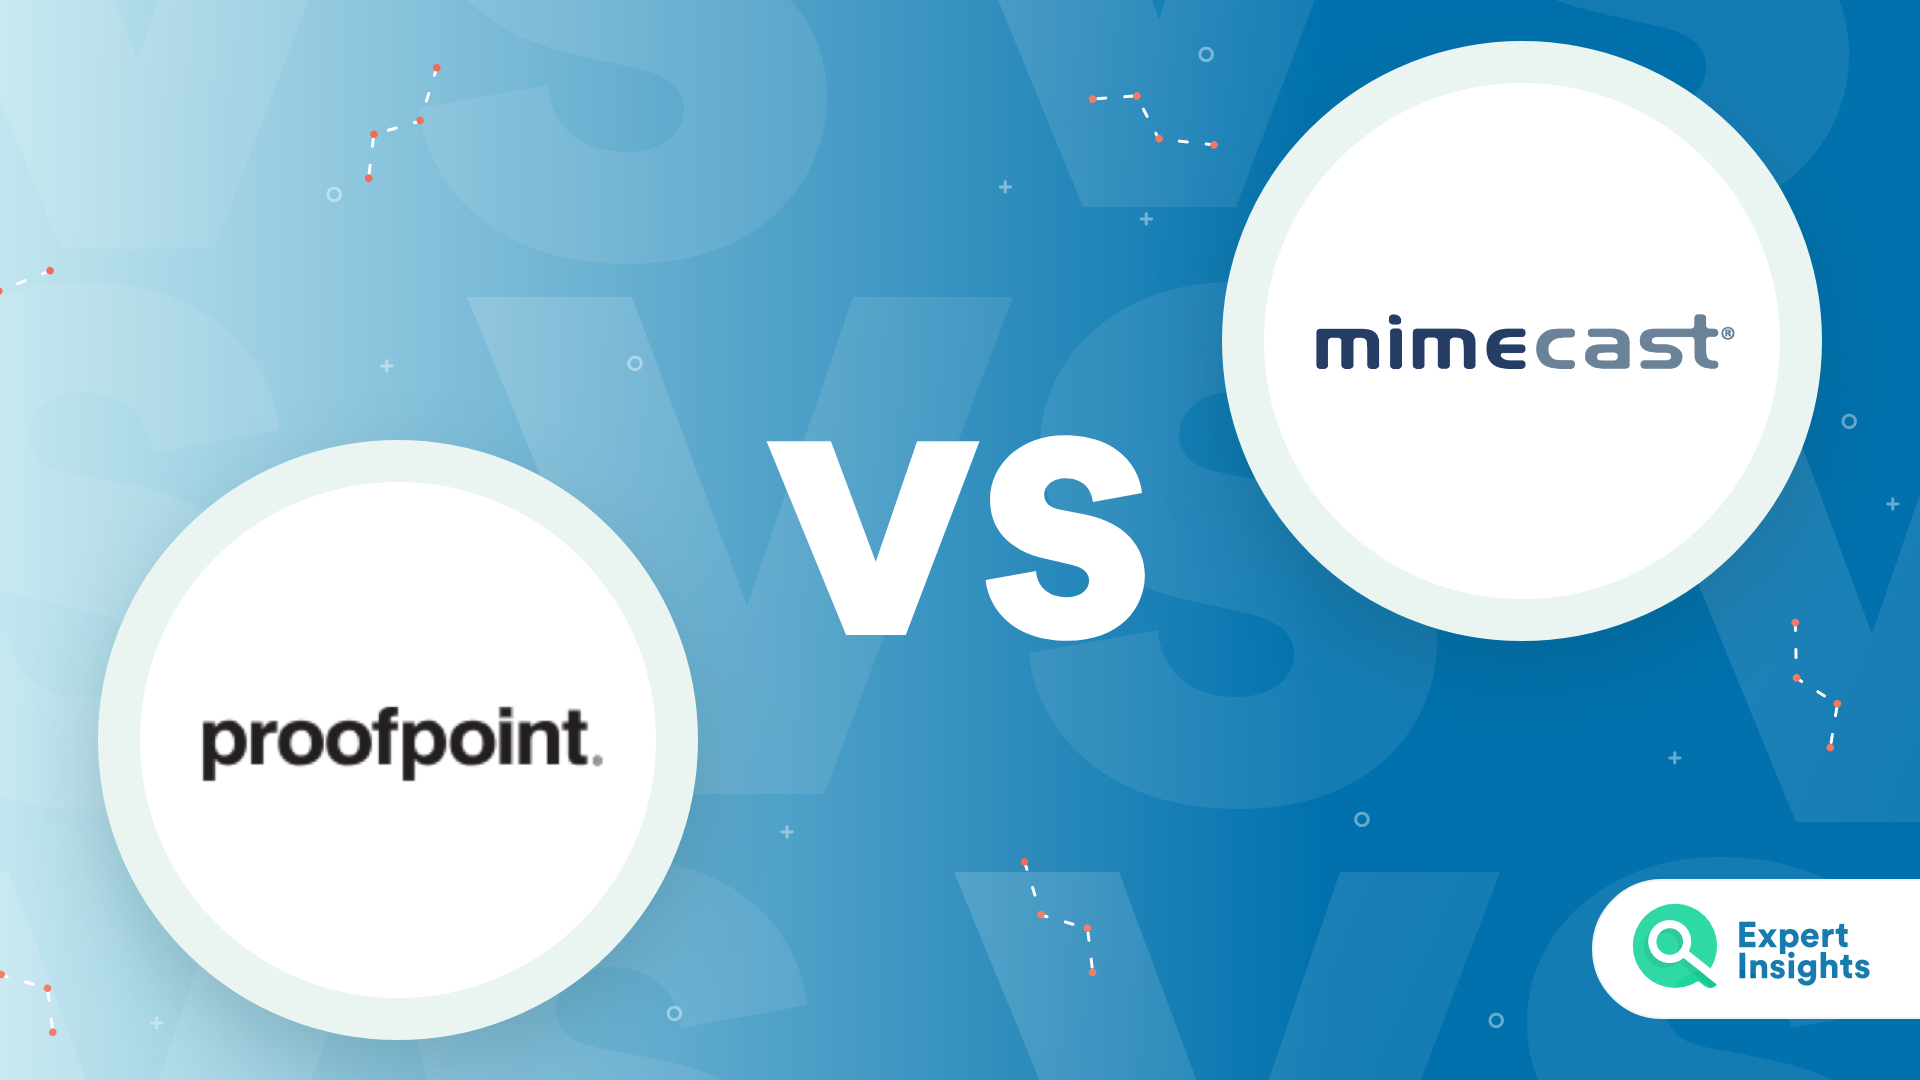 Expert Insights Mimecast vs Proofpoint for email security